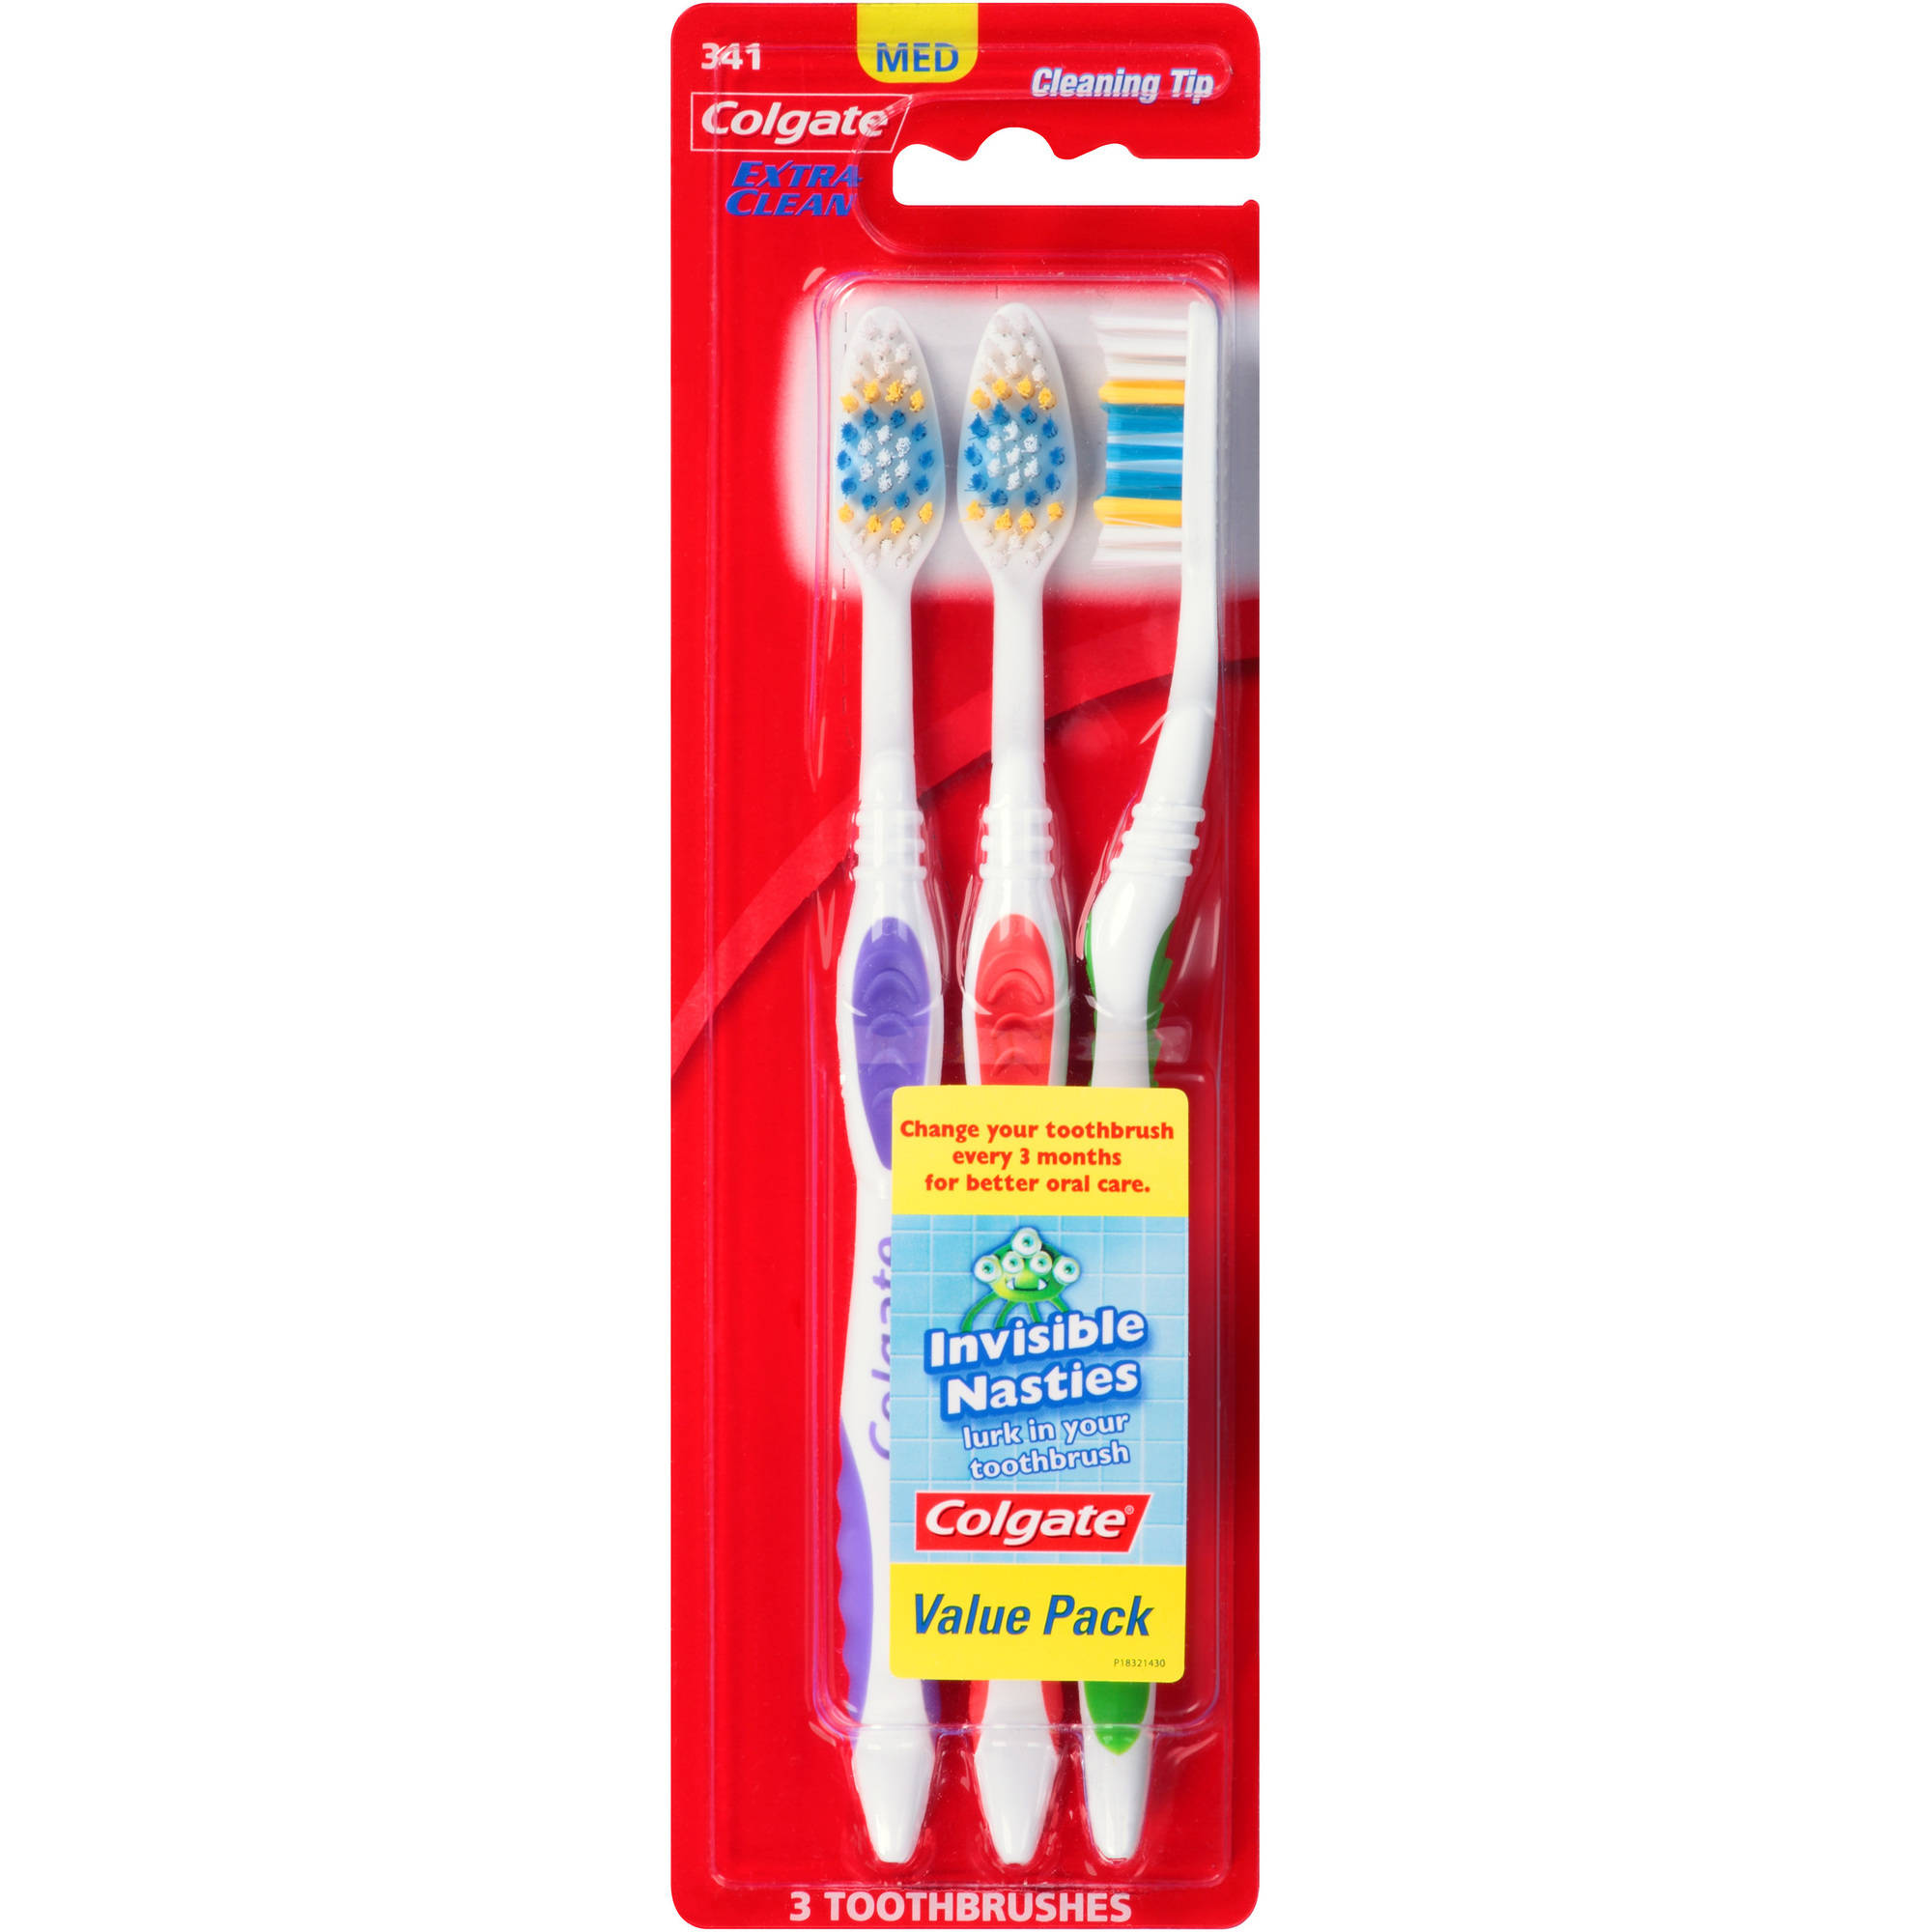 Colgate Extra Clean Medium Toothbrushes, 3 count